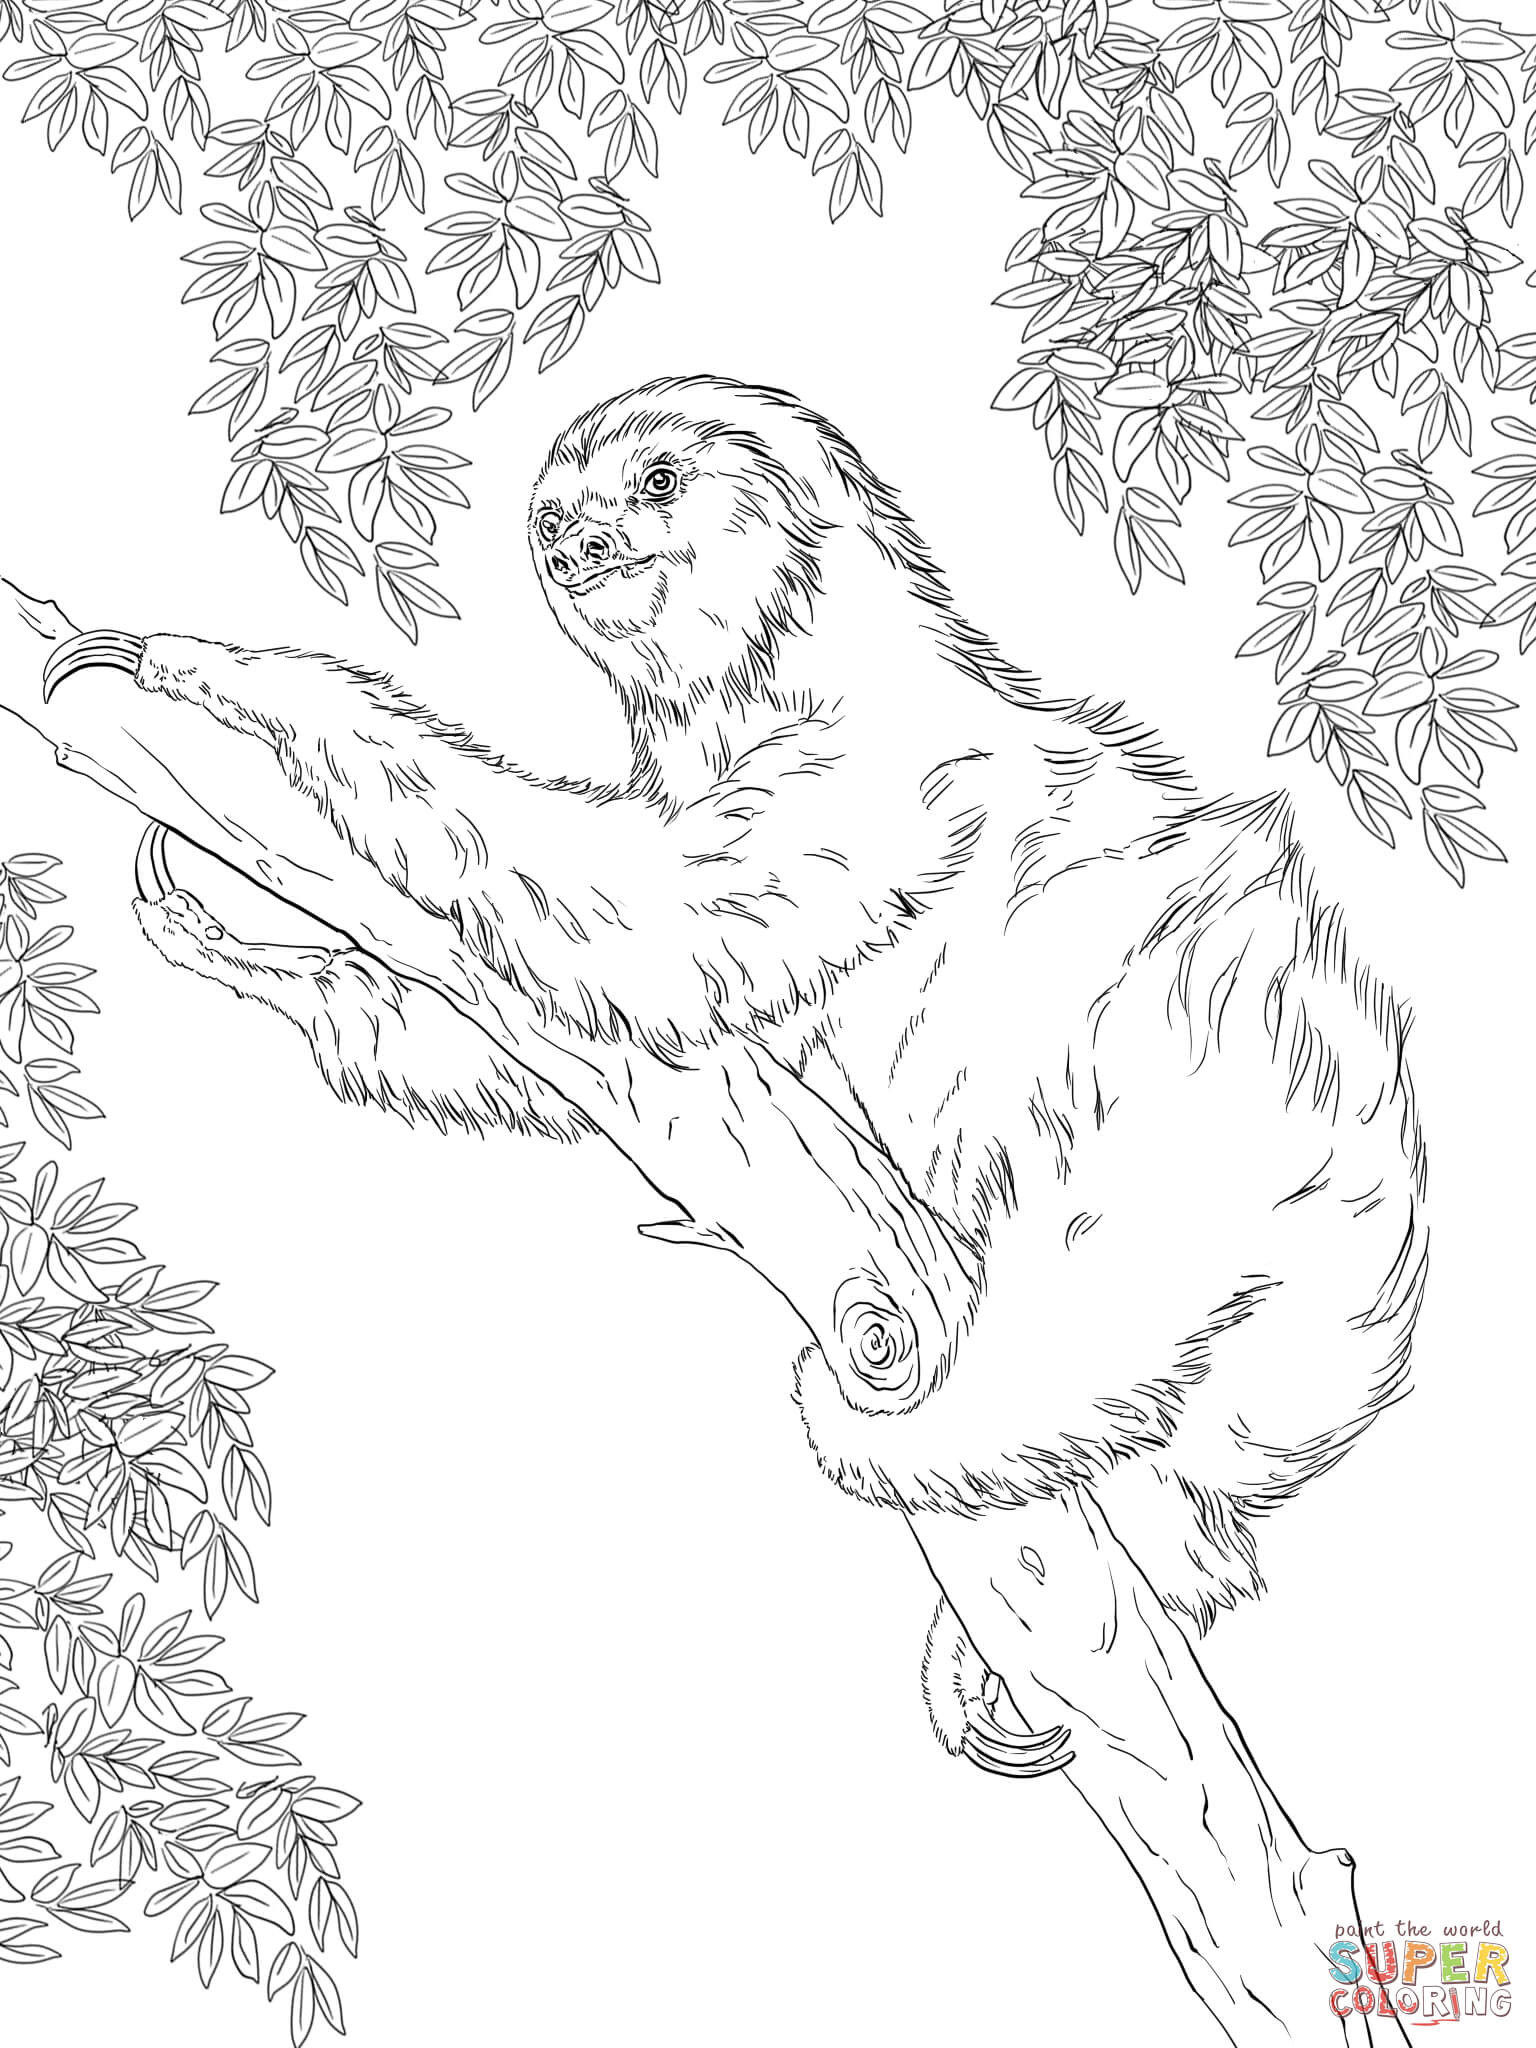 Sloth Coloring Sheets For Boys  Two toed Sloth Coloring Sheet Two Toed Tree Page